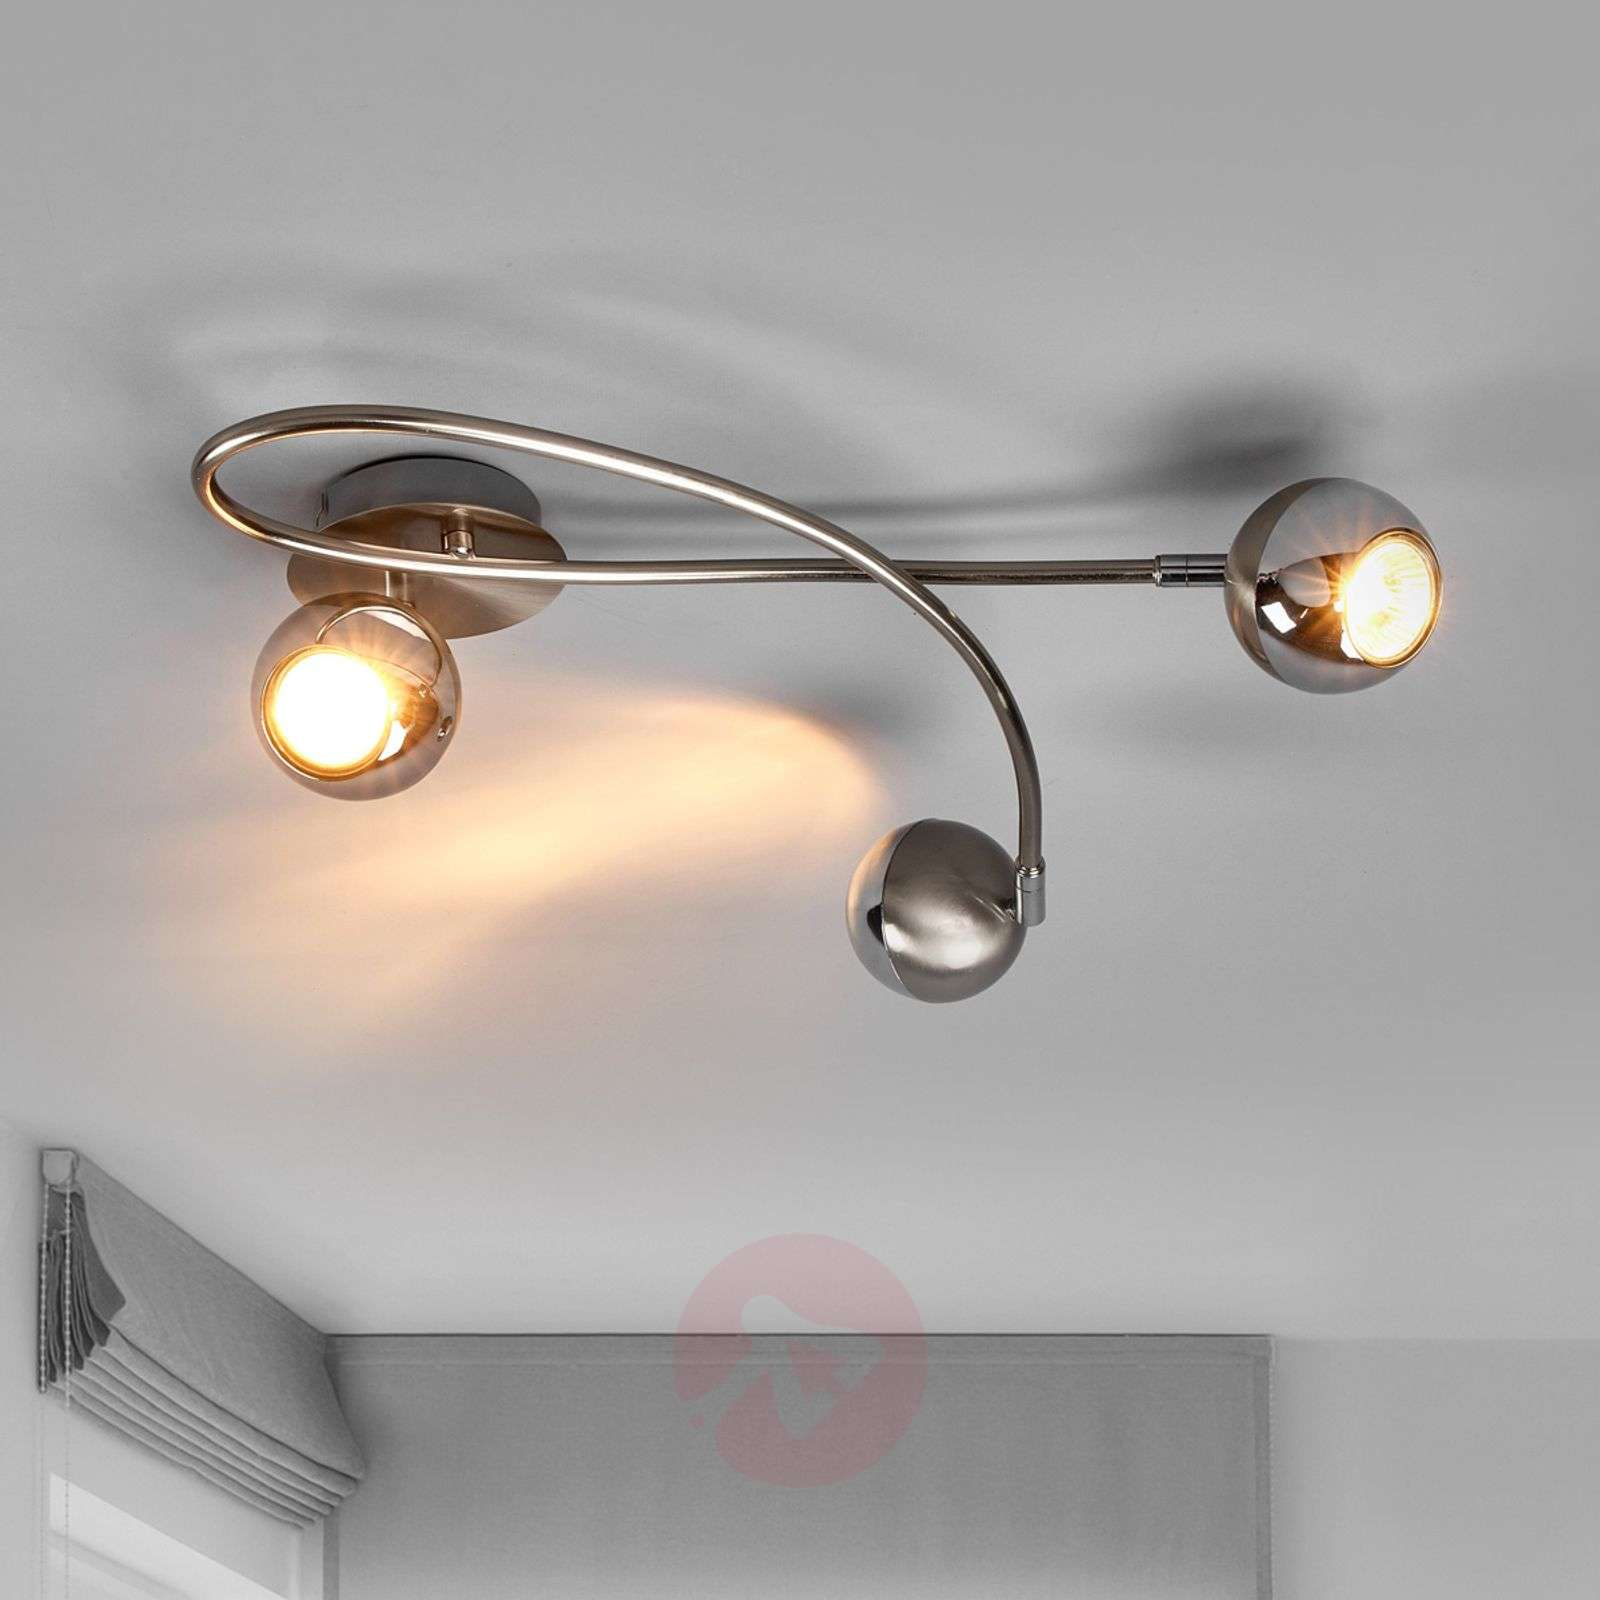 Plafonnier LED Arvin couleur nickel, 3 lampes-9970119-01